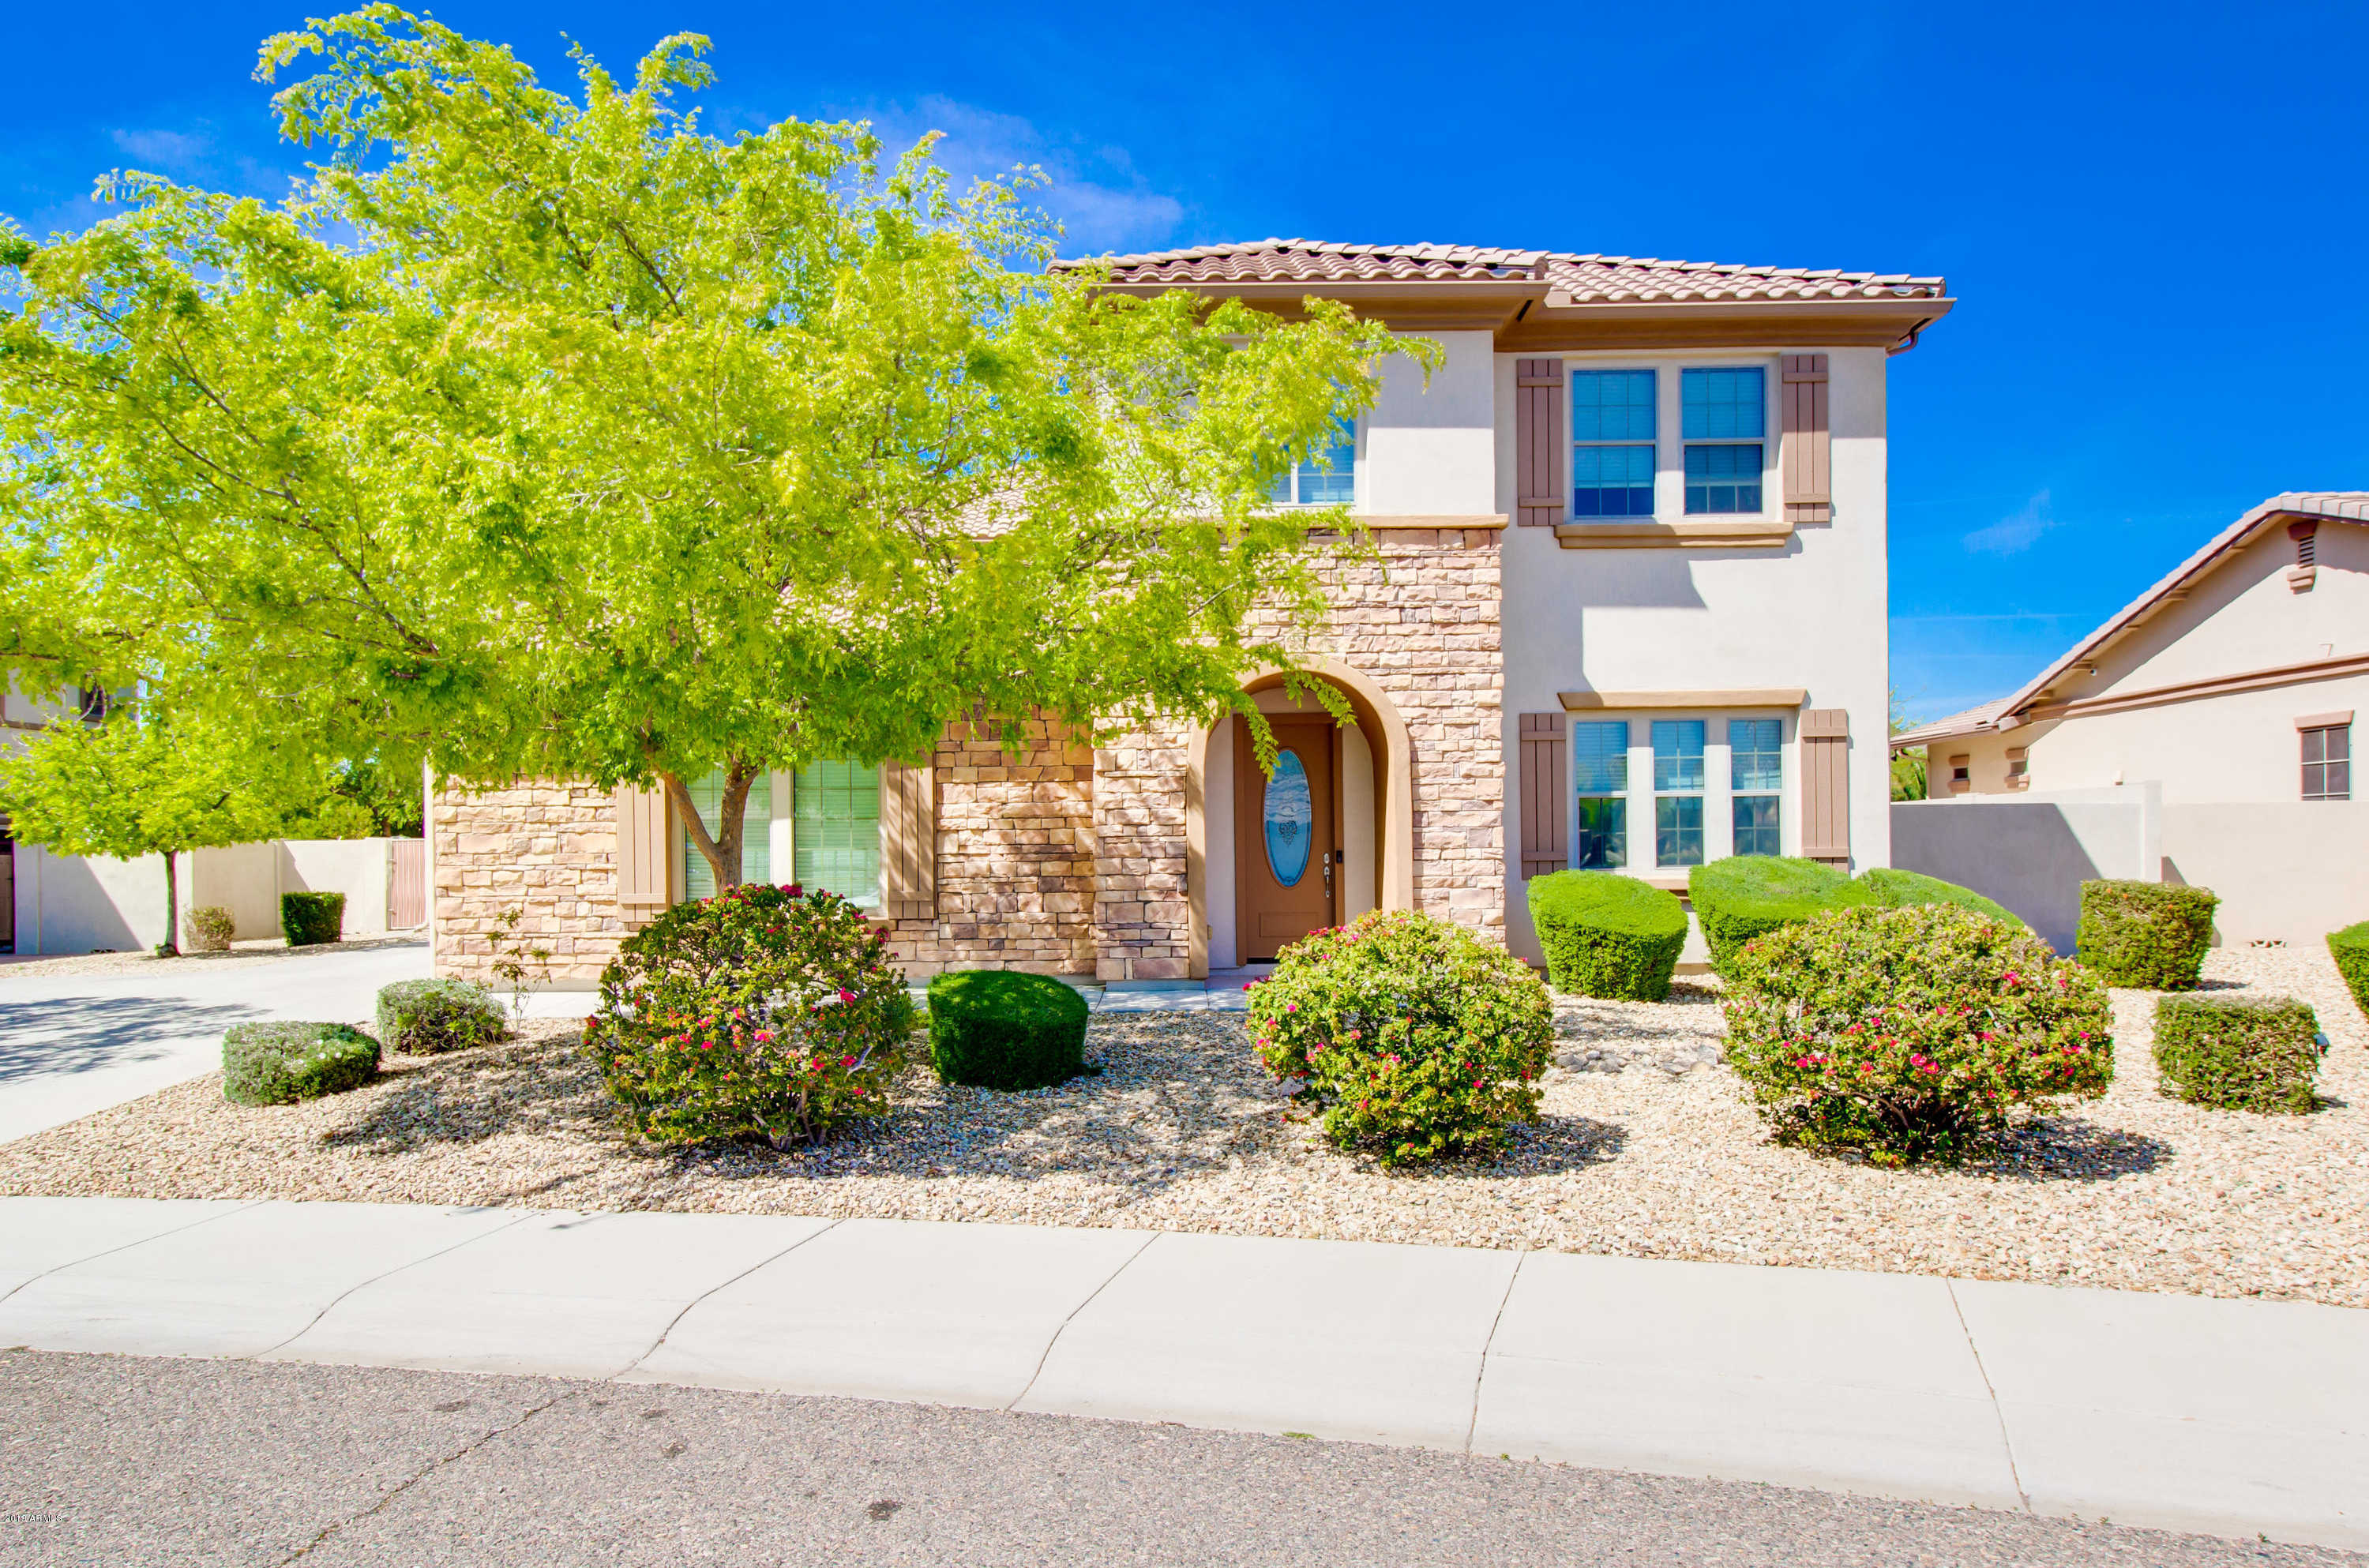 $614,900 - 5Br/5Ba - Home for Sale in Stetson Valley Parcels 5 13 14, Phoenix